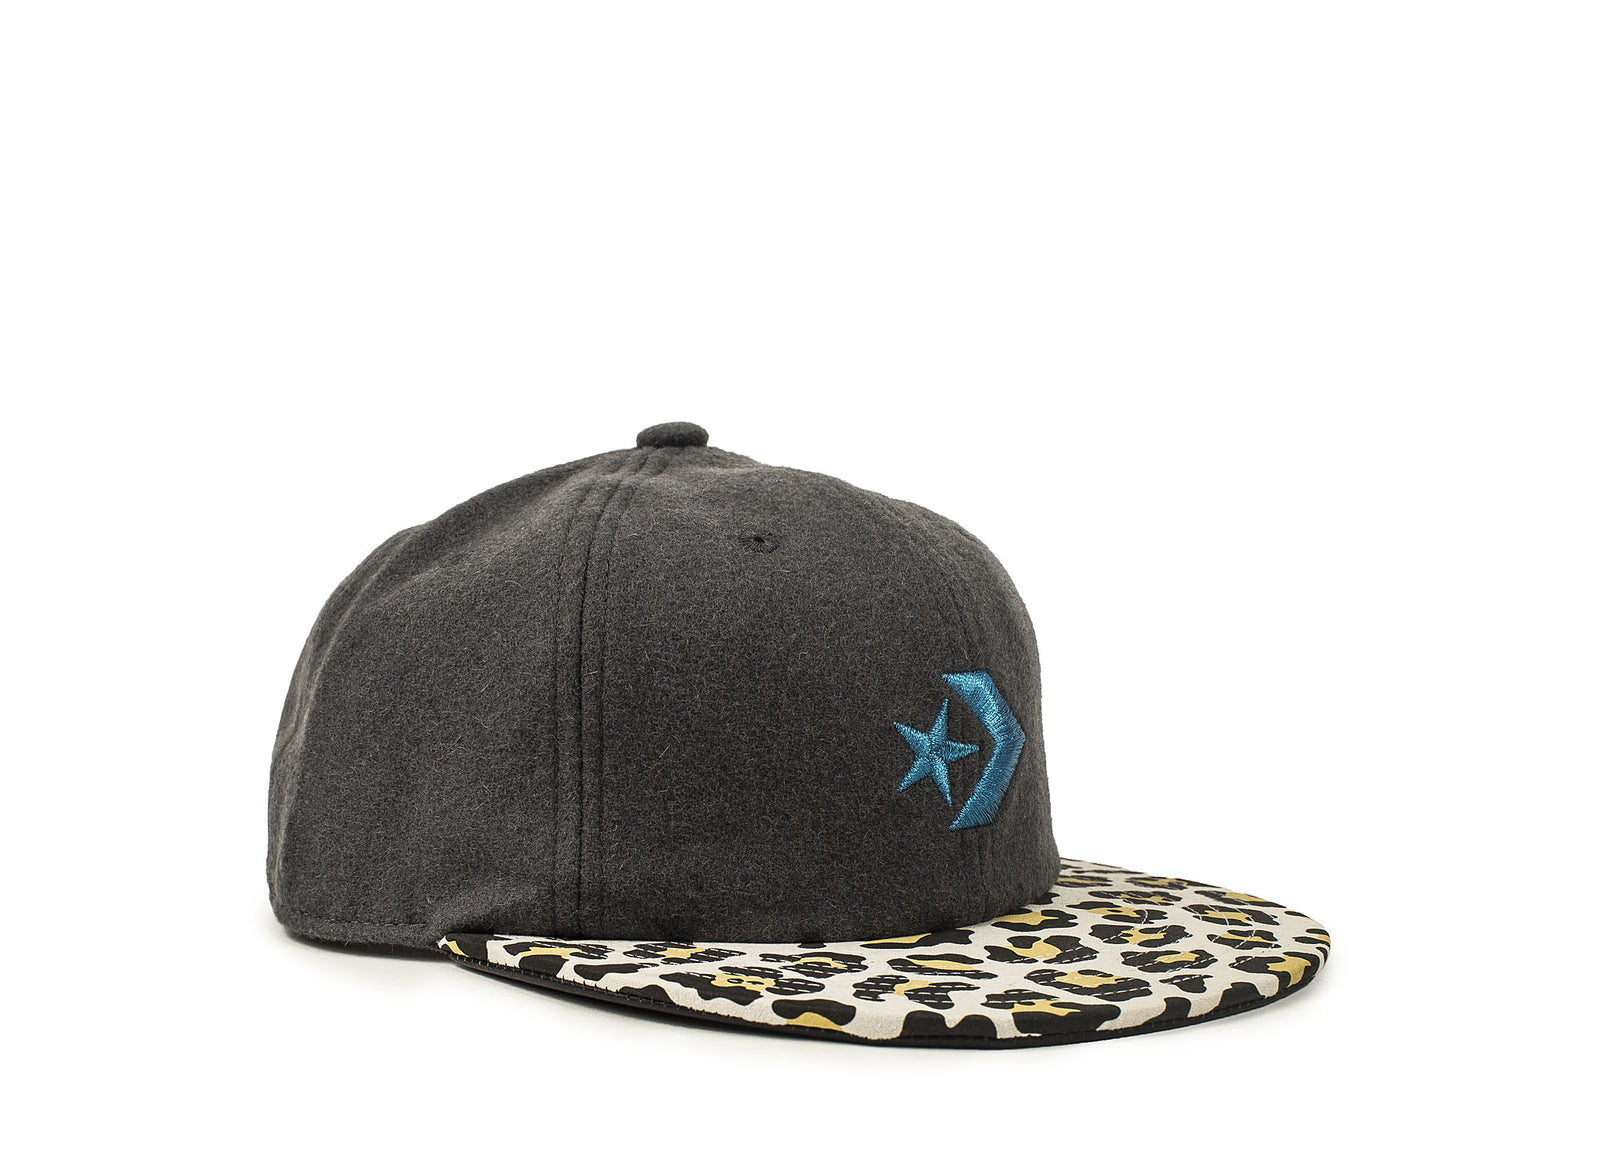 7ff697c92f0 CONVERSE x JUST DON LEOPARD BRIM HAT